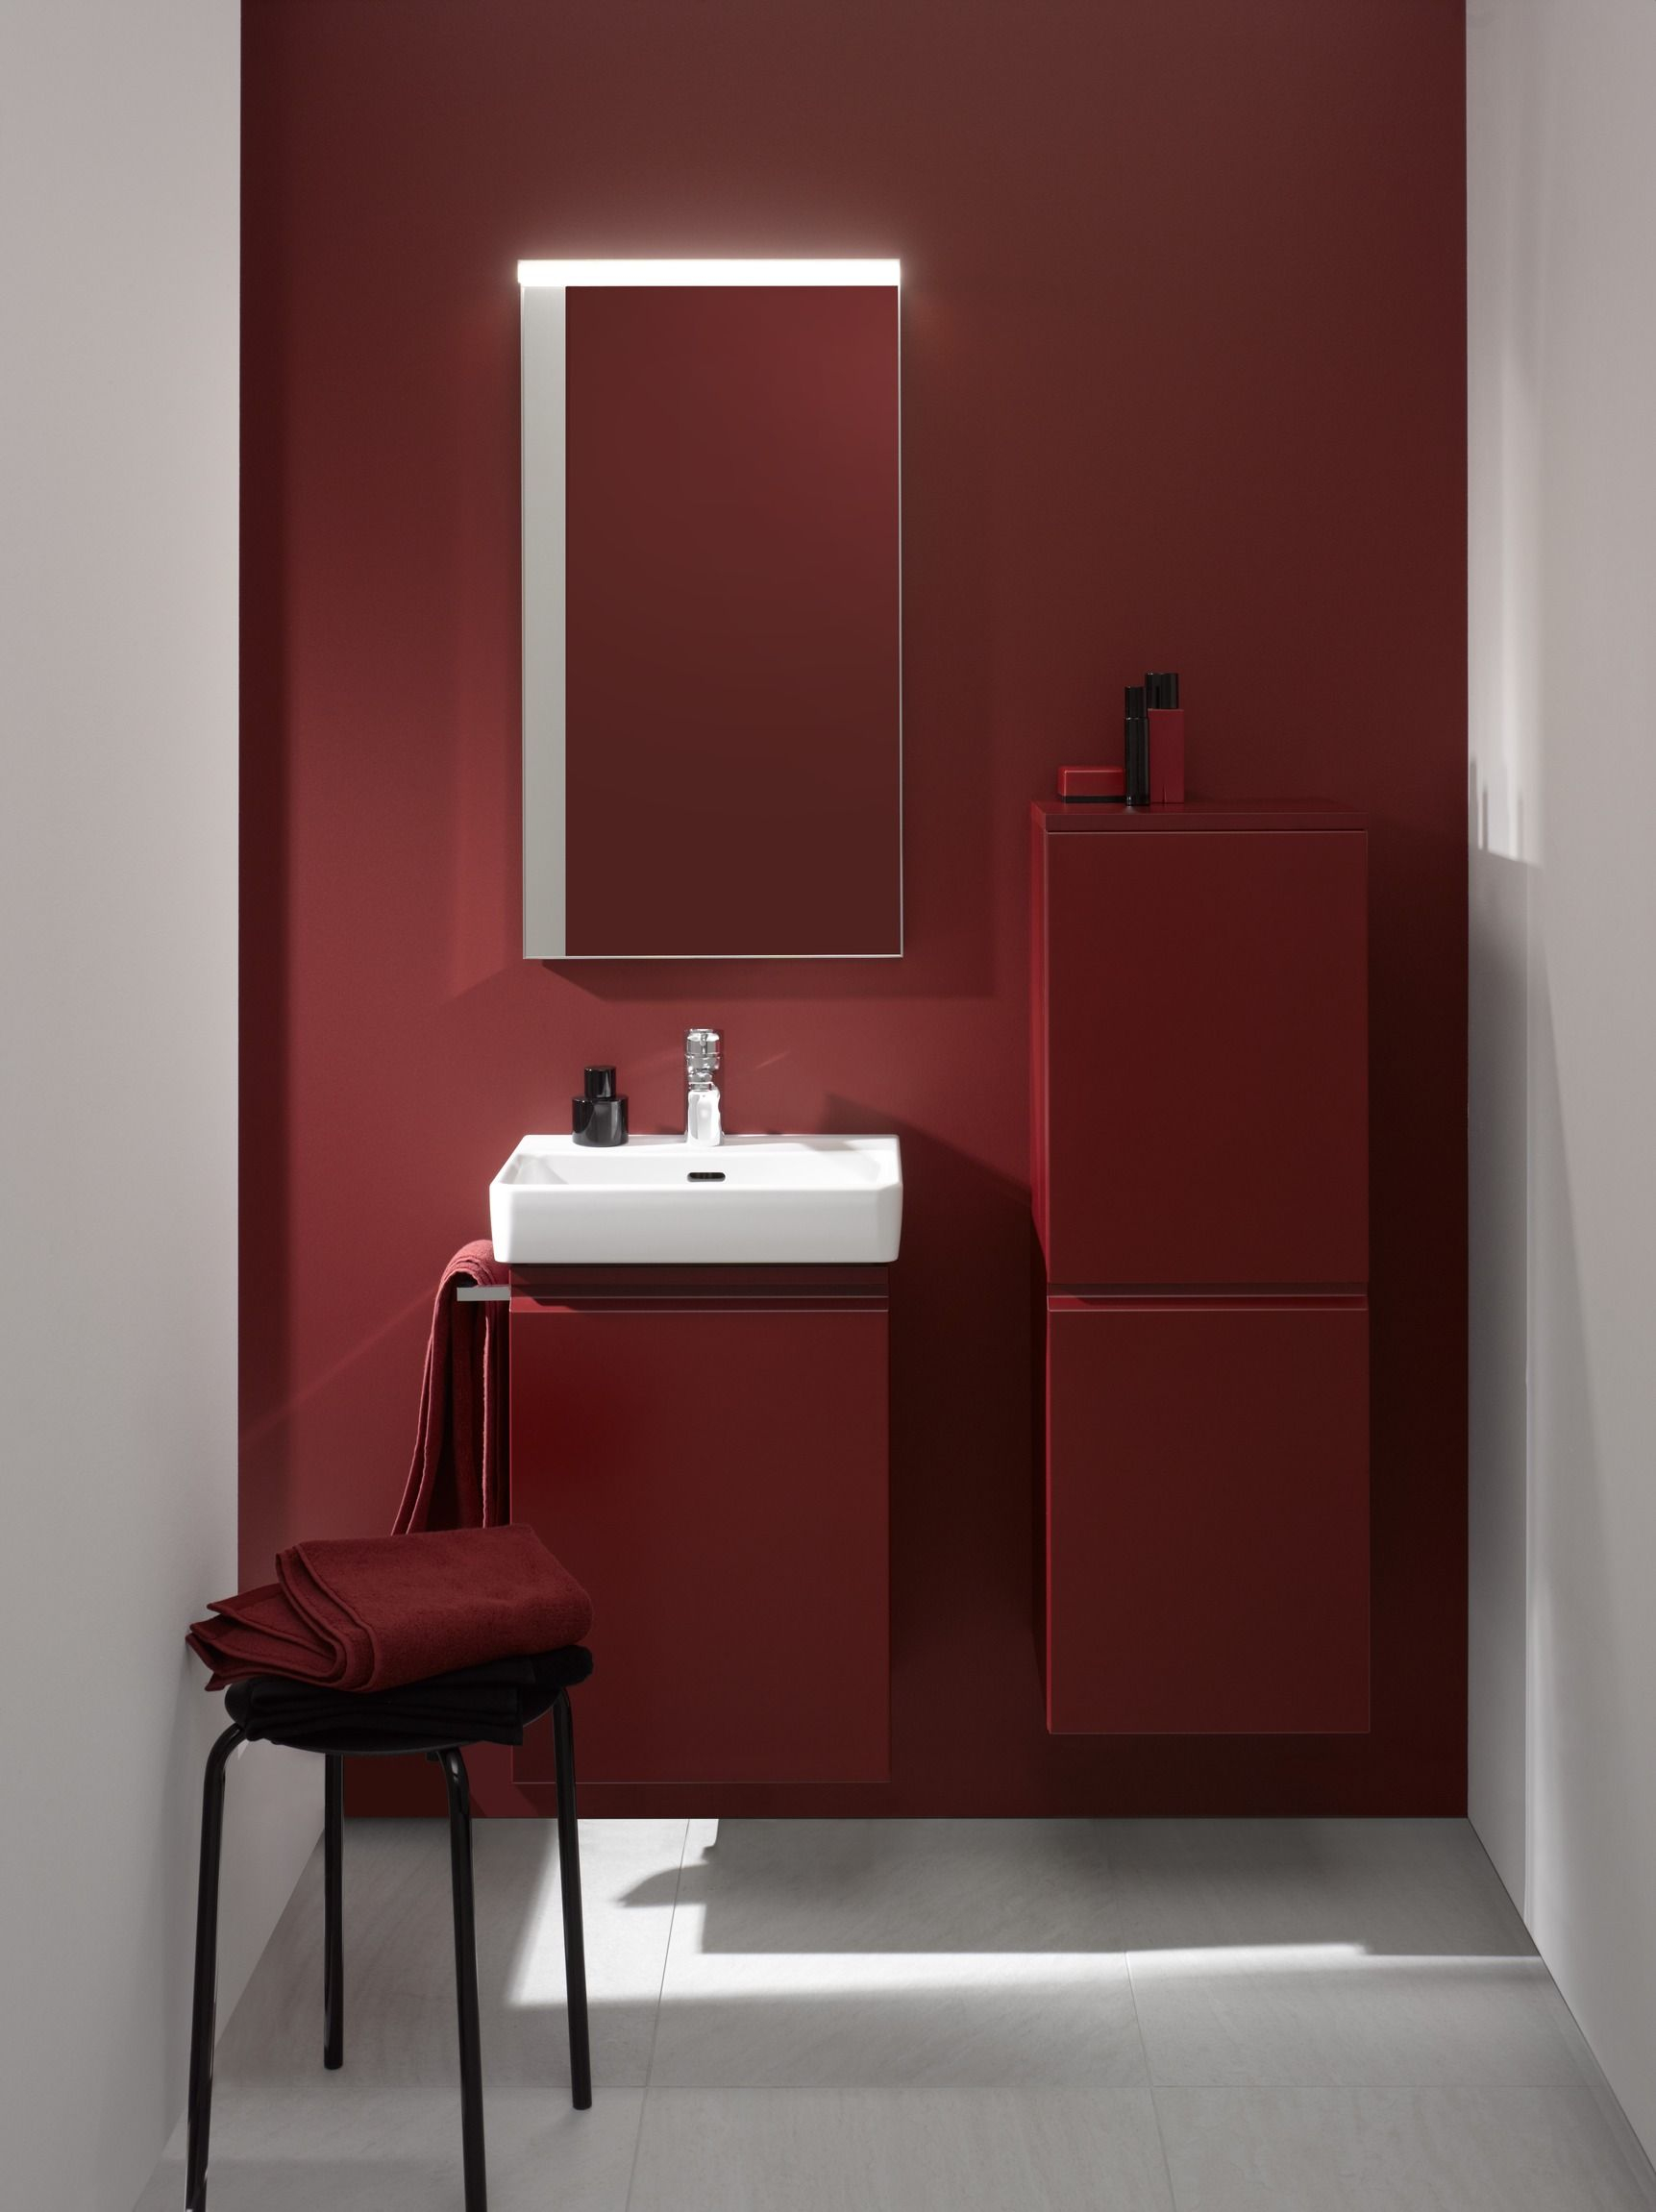 Laufen Pro Laufen Bathrooms Bathroom Red Red Bathroom regarding measurements 1723 X 2302